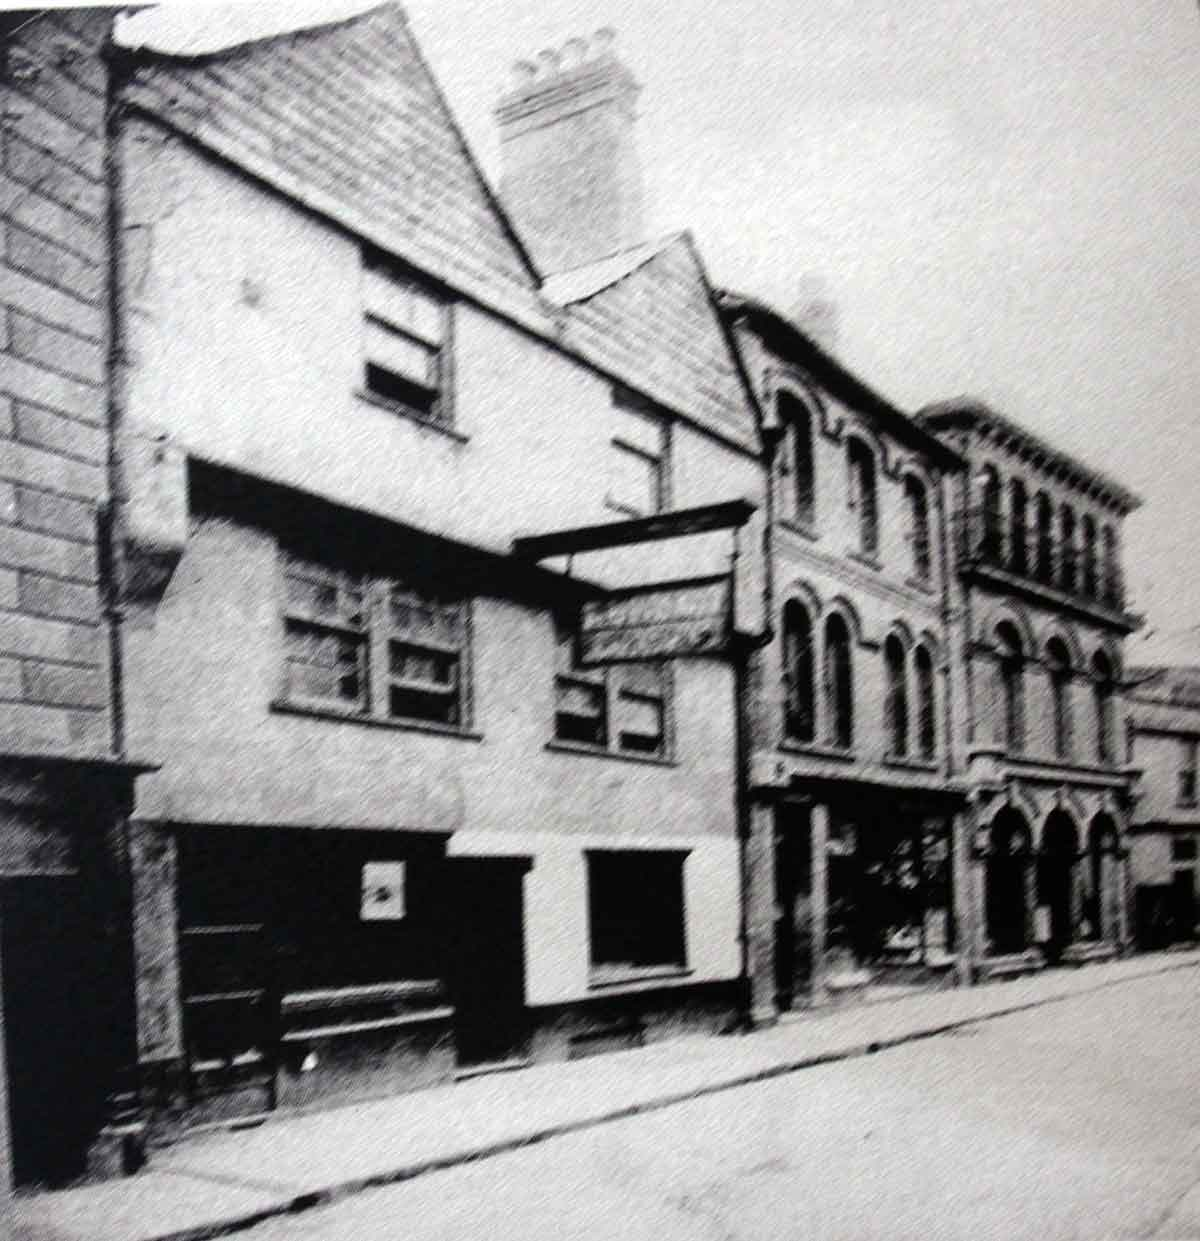 The London Inn 26/28 Church Street c.1900.